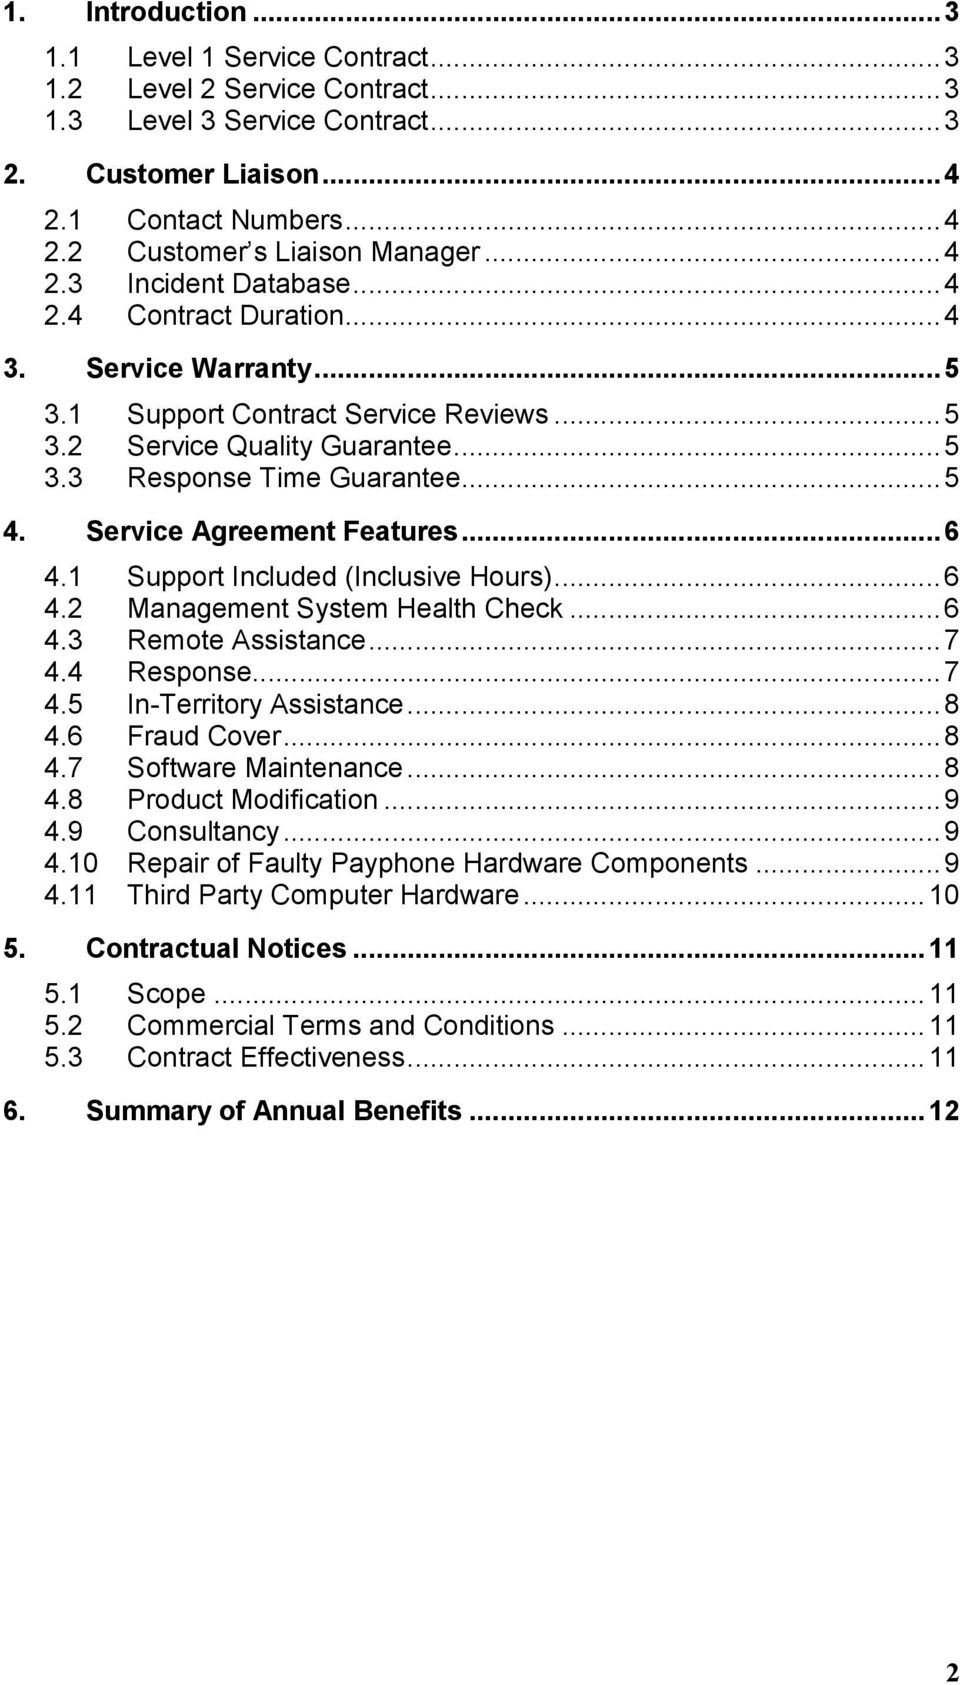 Service Agreement Features...6 4.1 Support Included (Inclusive Hours)...6 4.2 Management System Health Check...6 4.3 Remote Assistance...7 4.4 Response...7 4.5 In-Territory Assistance...8 4.